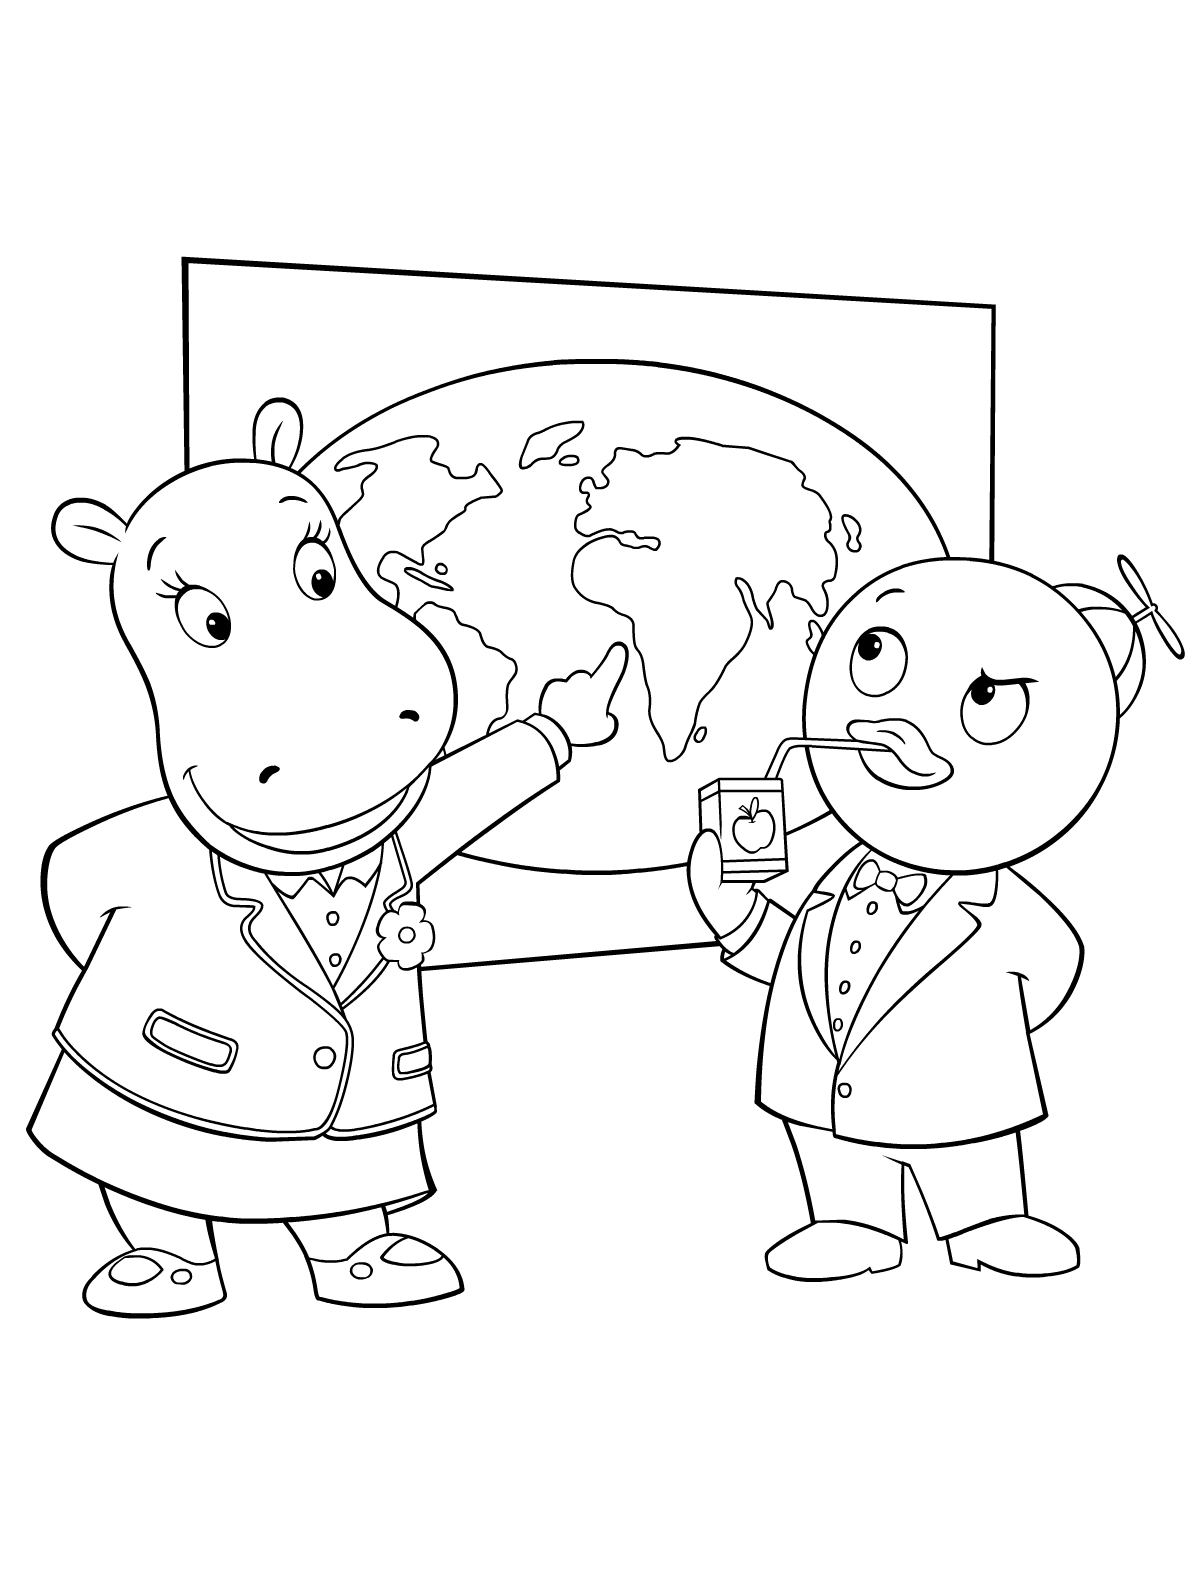 backyardigans coloring pages tyrone and uniqua from the backyardigans coloring page backyardigans coloring pages